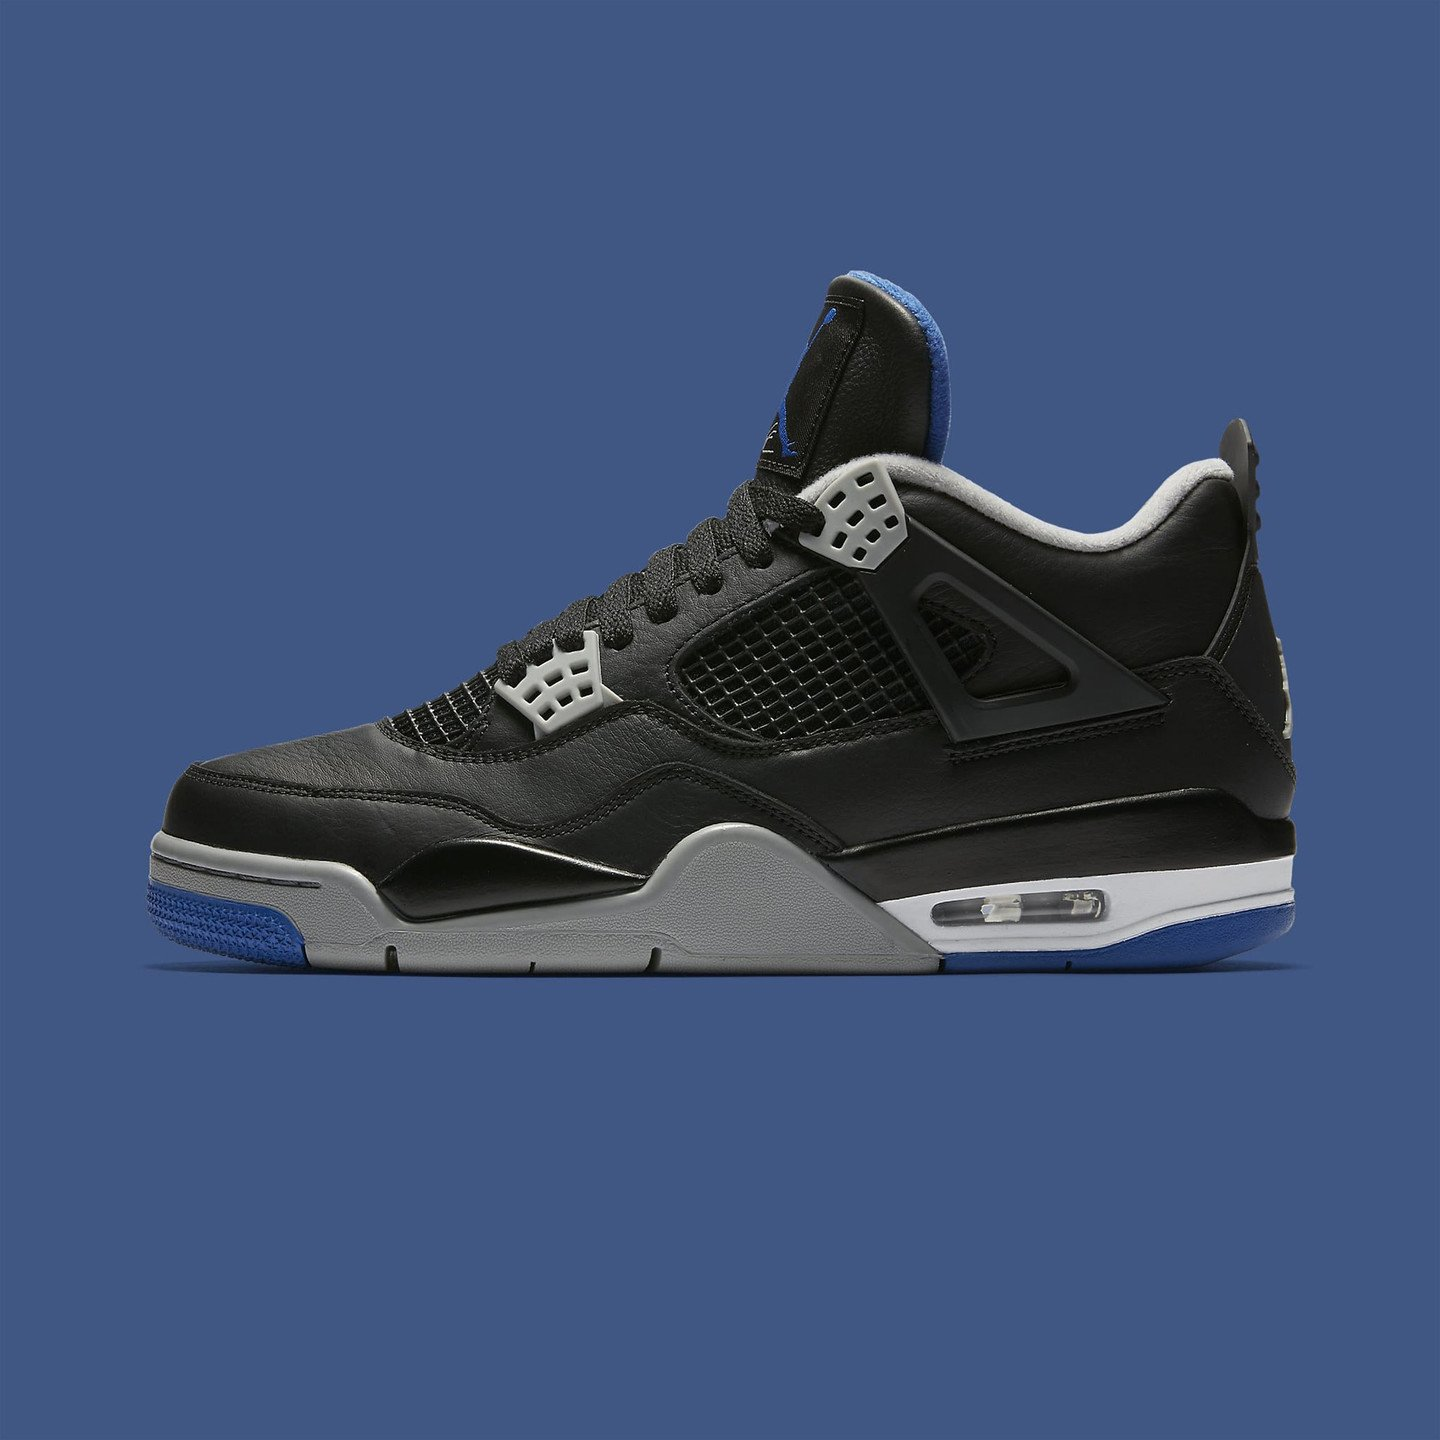 Jordan Air Jordan 4 Retro Black / Game Royal / Matte Silver  308497-006